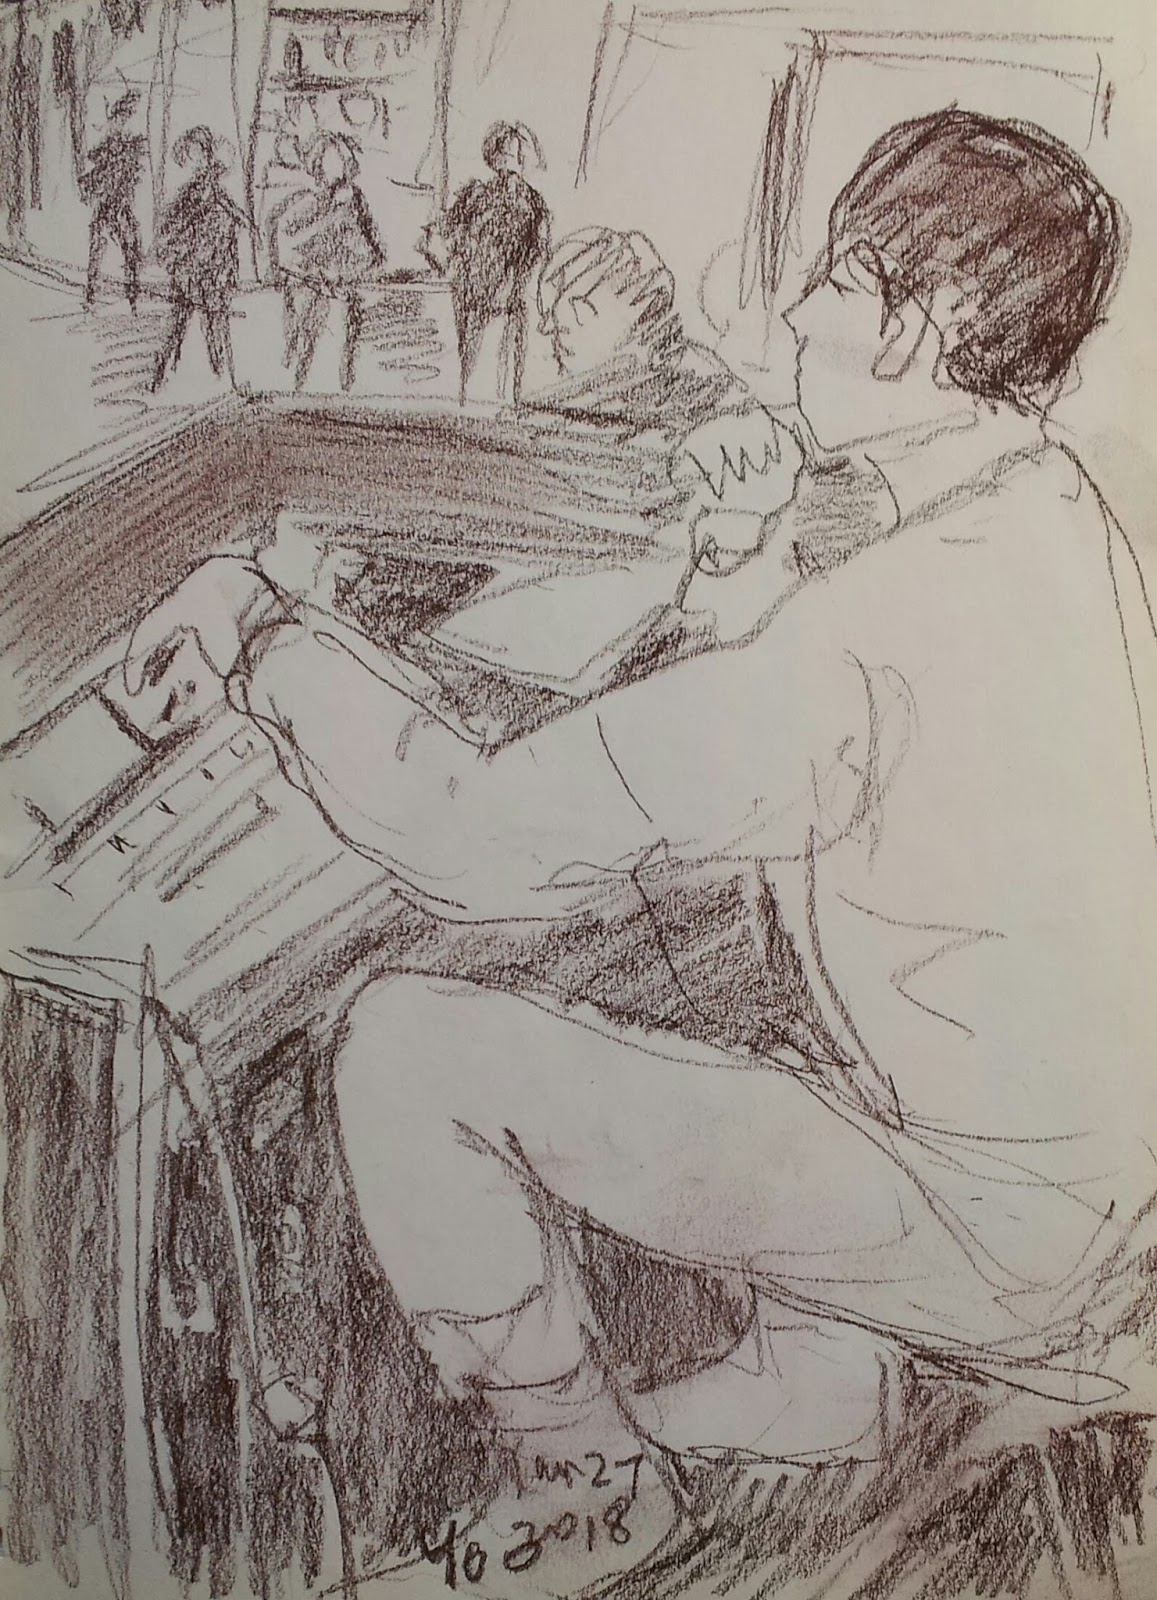 I Took My Seat Near This Sound Engineer Tried To Draw Him Without His Efforts Music Would Not Be Transferred So Greatly The Audience